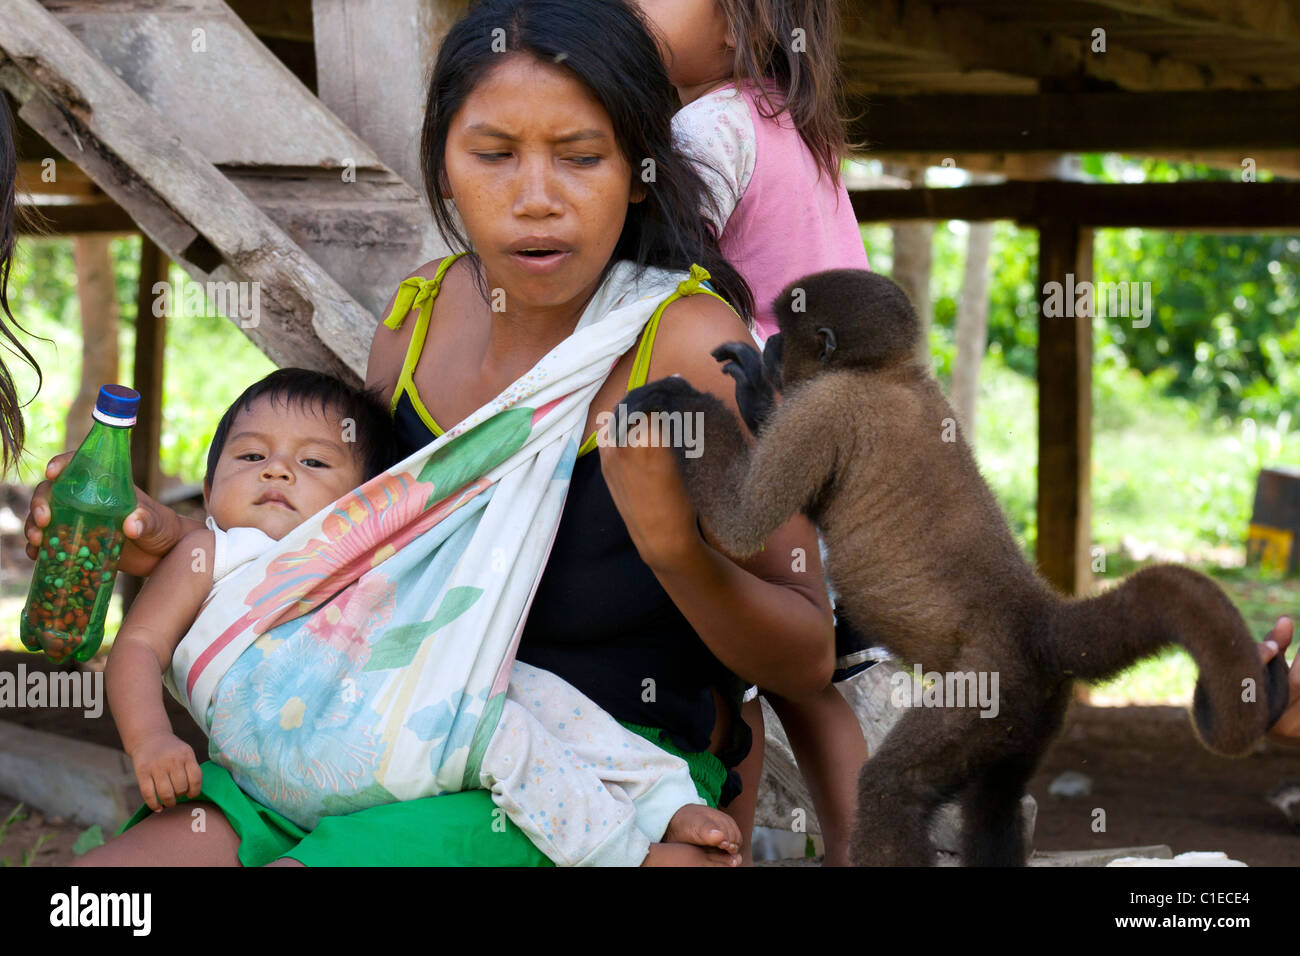 Siona people village, deep in the ecuadorian amazonian jungle (cuyabeno wildlife reserve).  Locals interact with - Stock Image